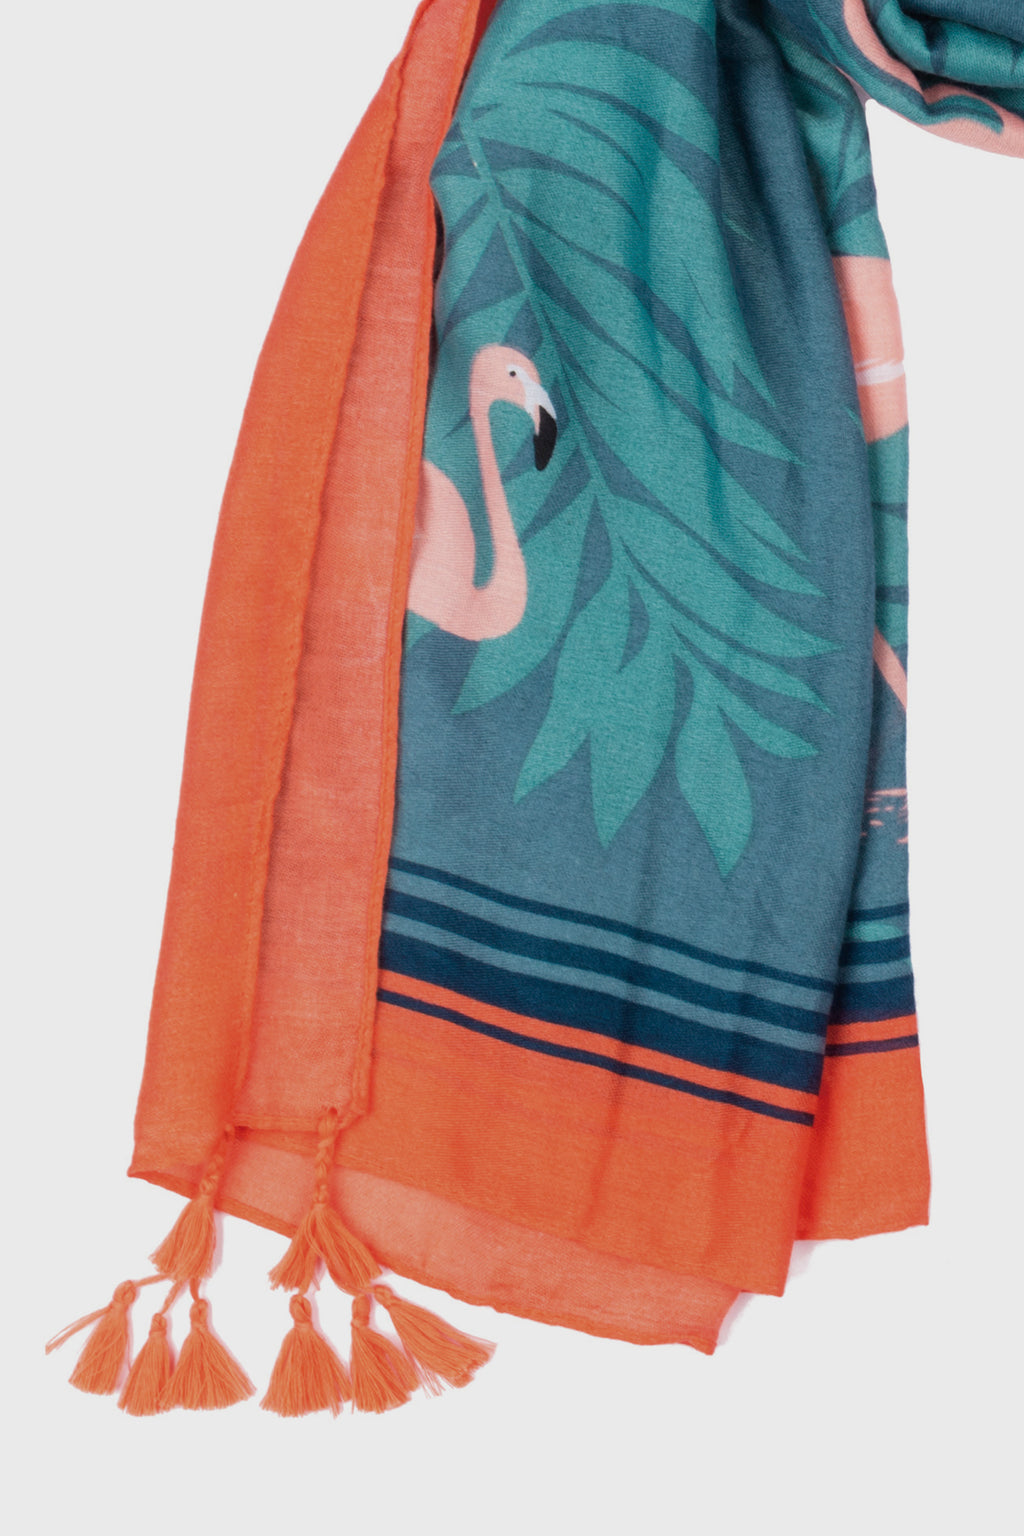 Flamingo Palm Printed Scarf With Tassels at Corners (BSS3757)-SCARF-BaySky